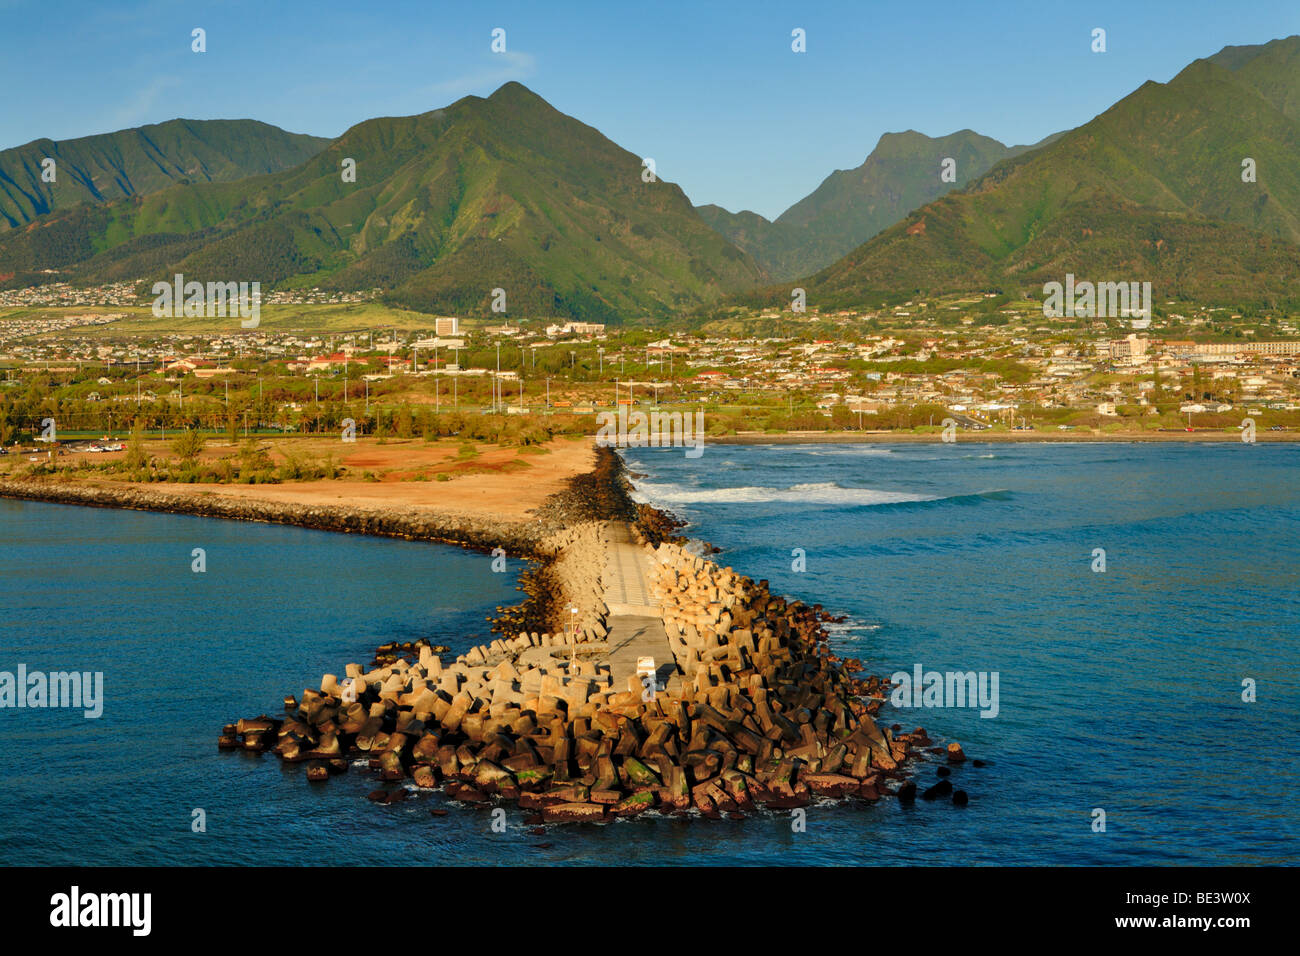 Breakwater as seen from cruise ship entering port of Kahalui, Maui, Hawaii, USa. Stock Photo